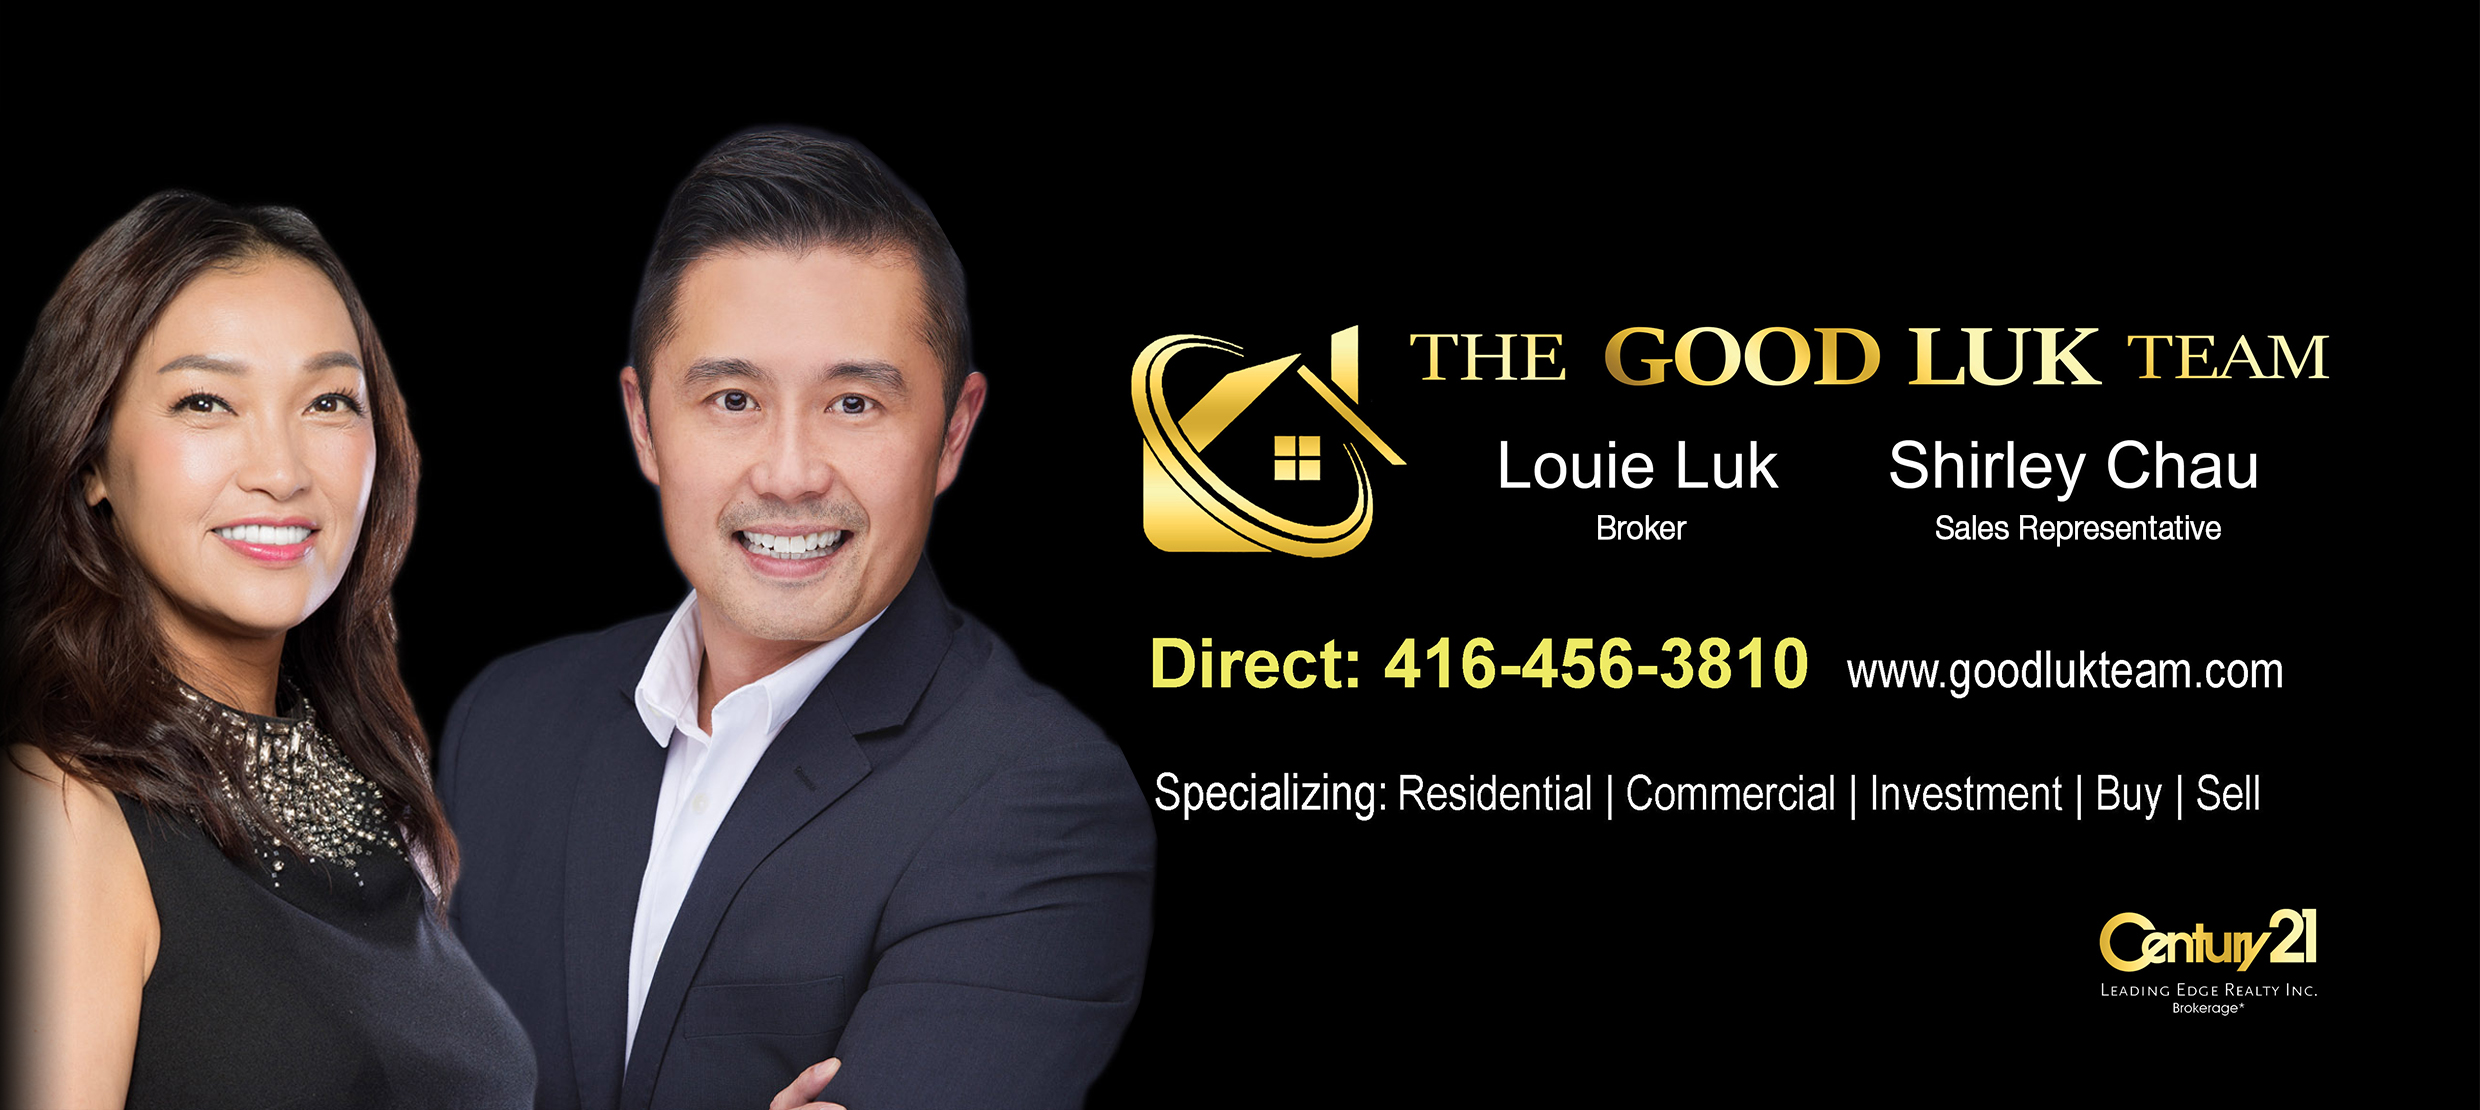 Real estate specialists Louie Luk and Shirley Chau from Good Luk Team